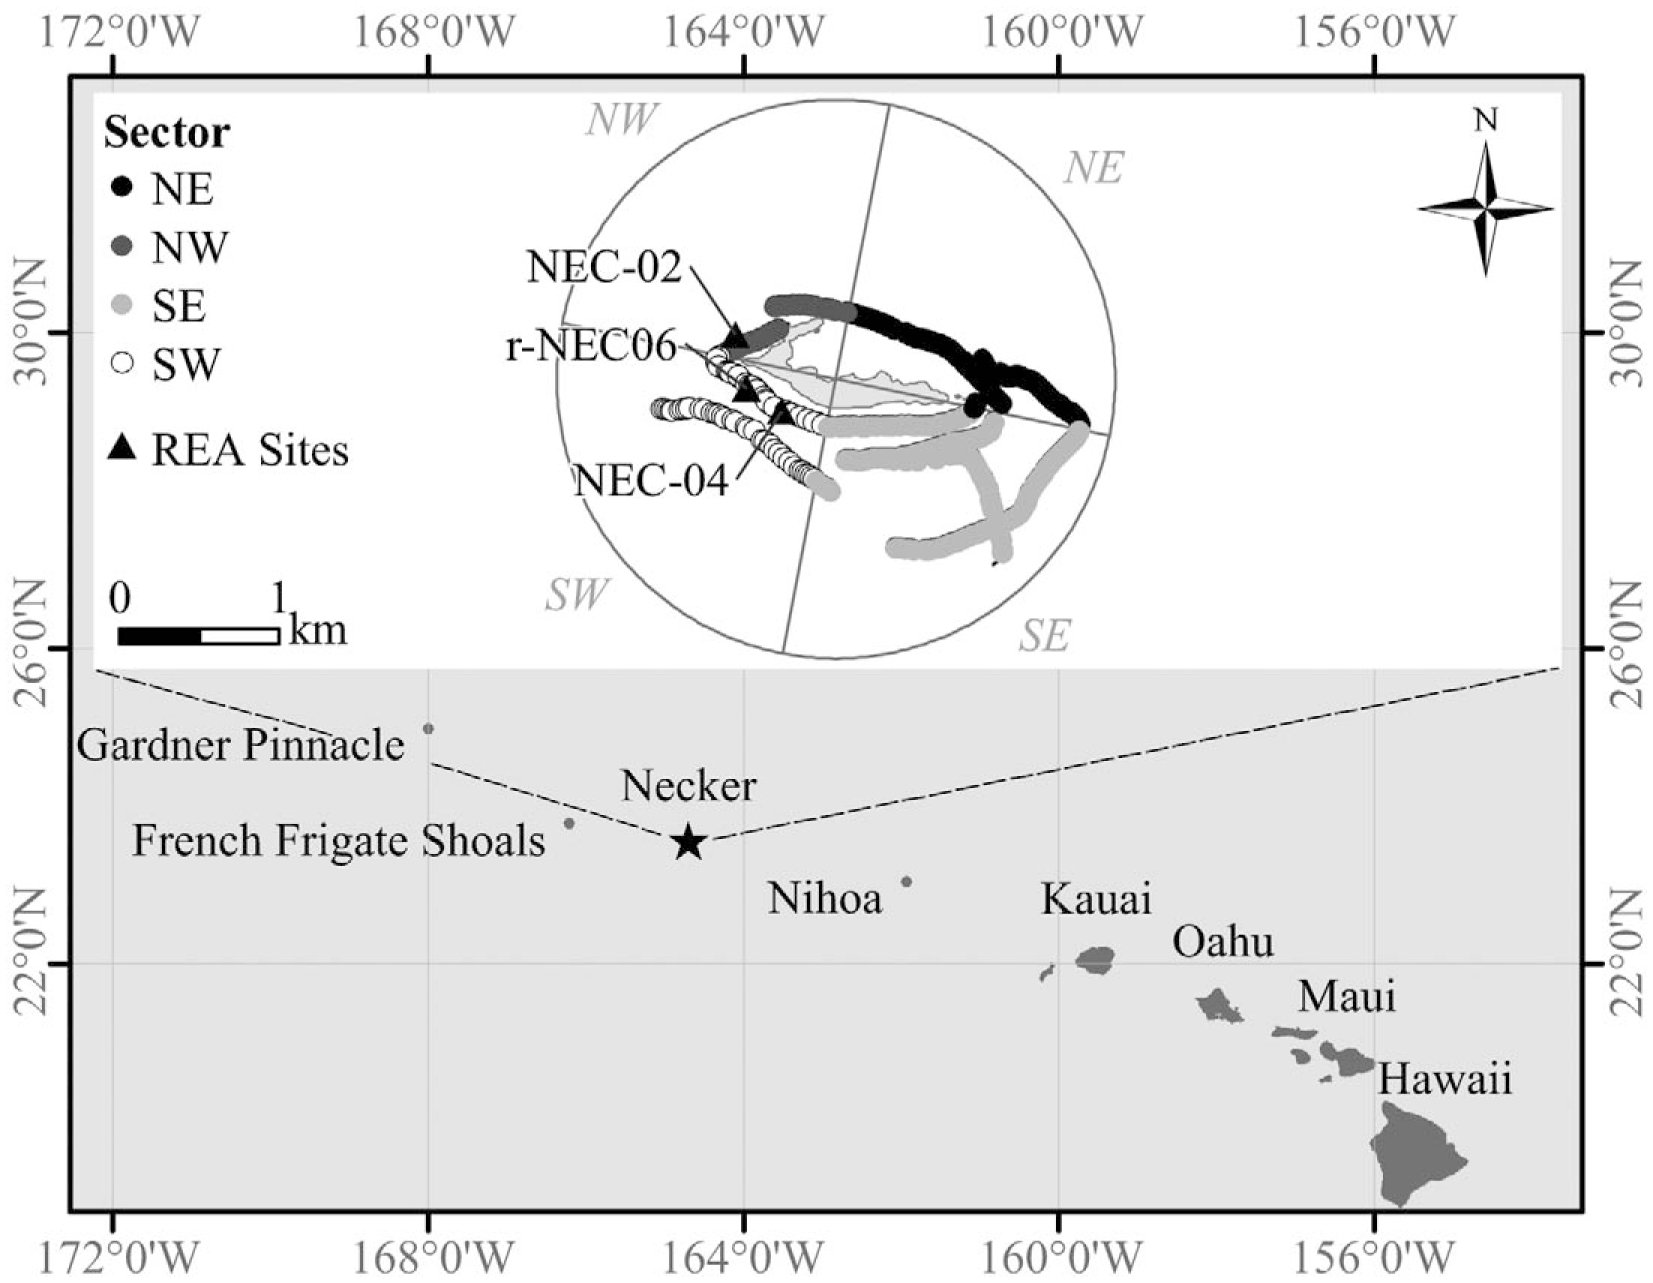 Spatial and Temporal Comparisons of Benthic Composition at Necker